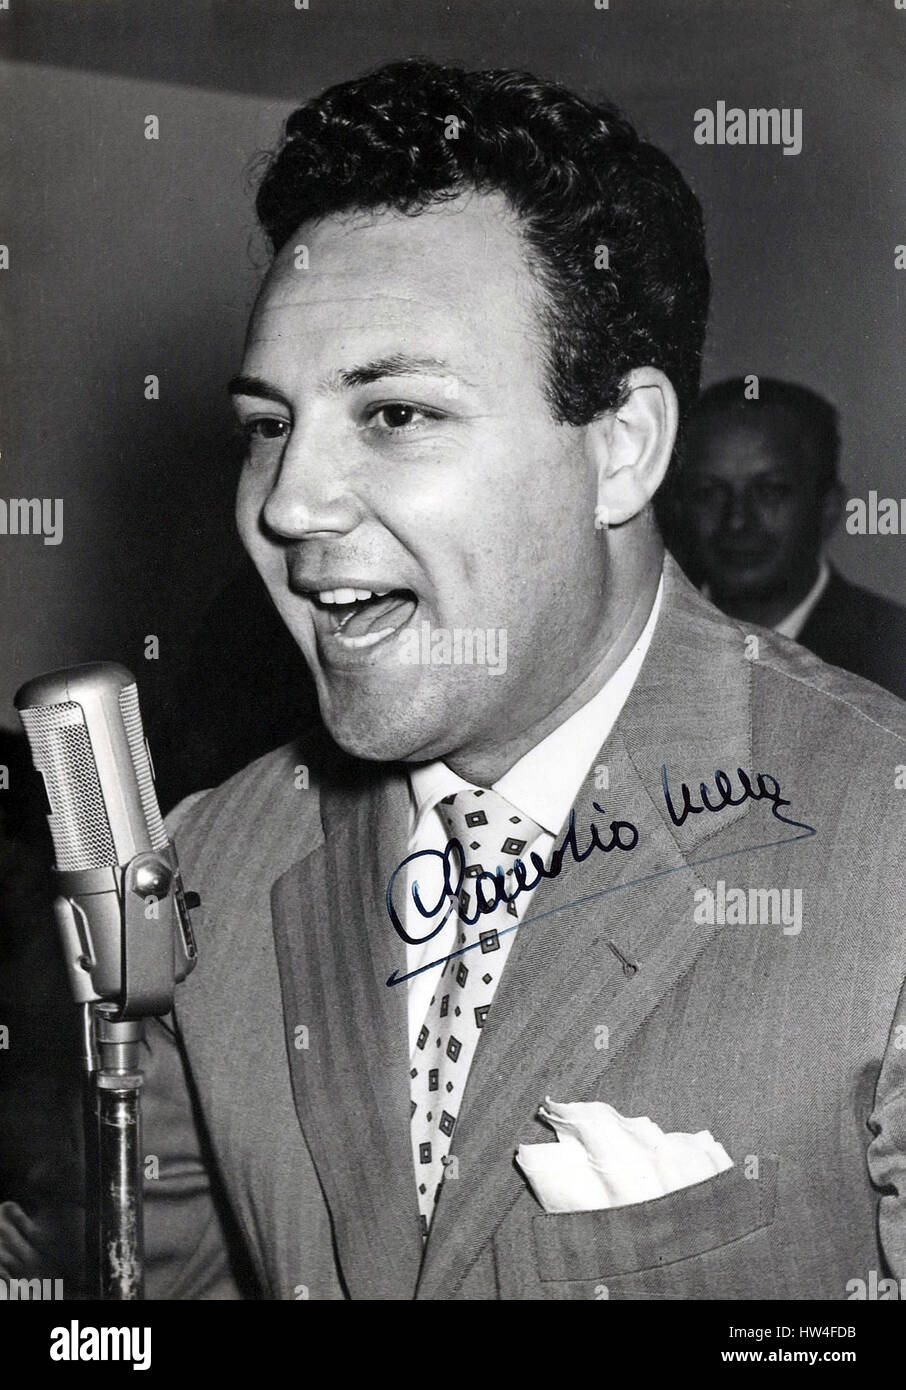 Italian singer Claudio Villa photography with autograph - Stock Image